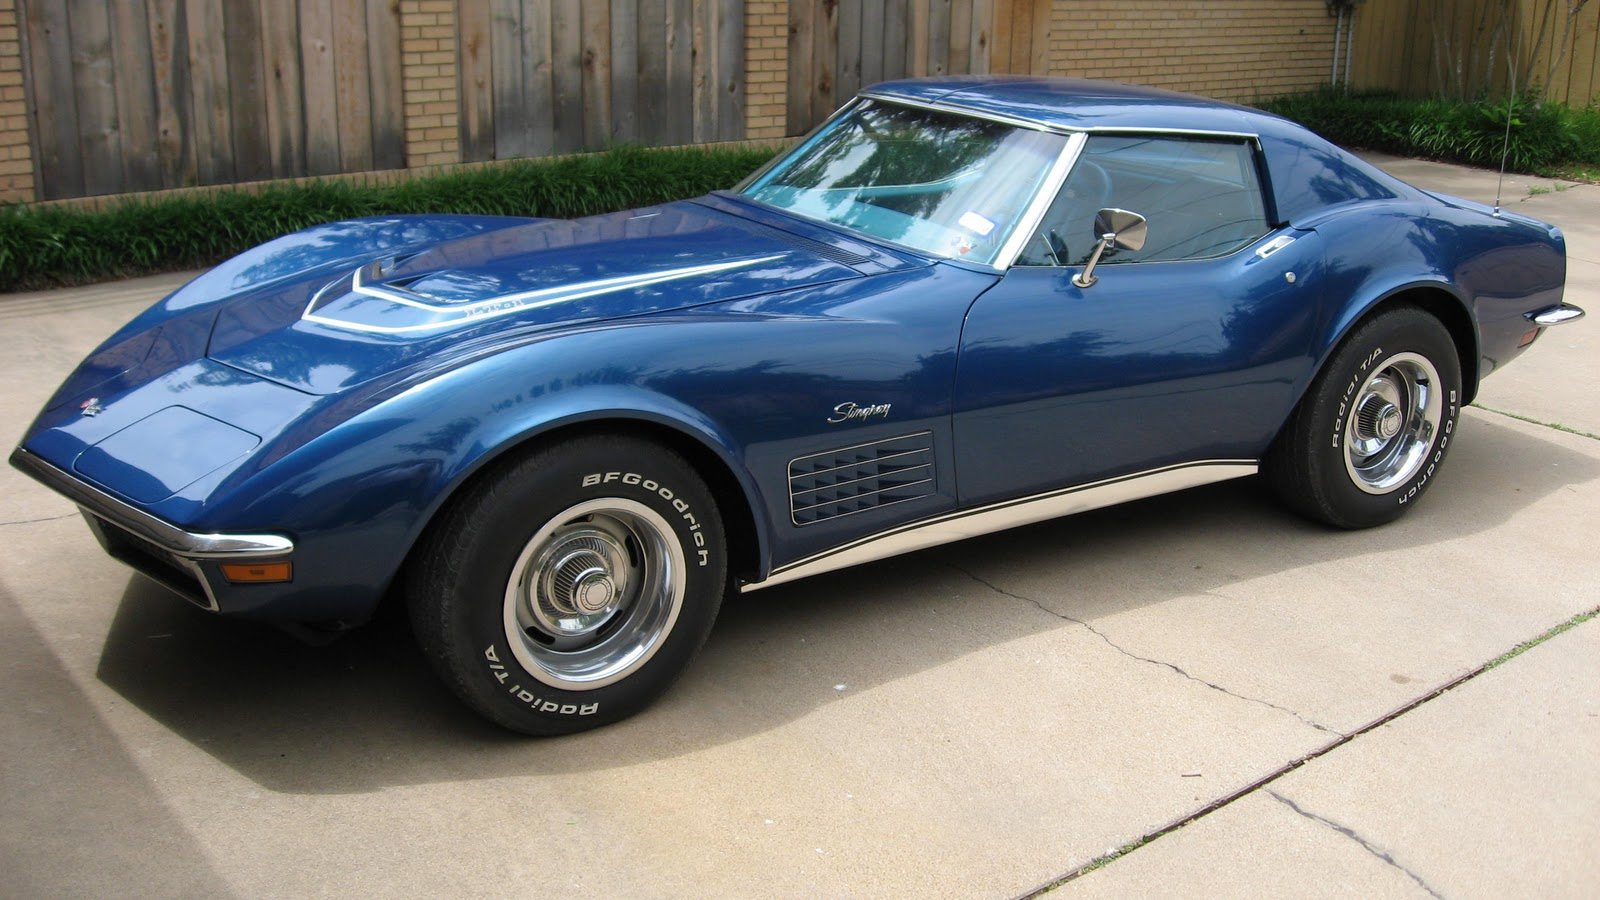 Corvette Blue Paint